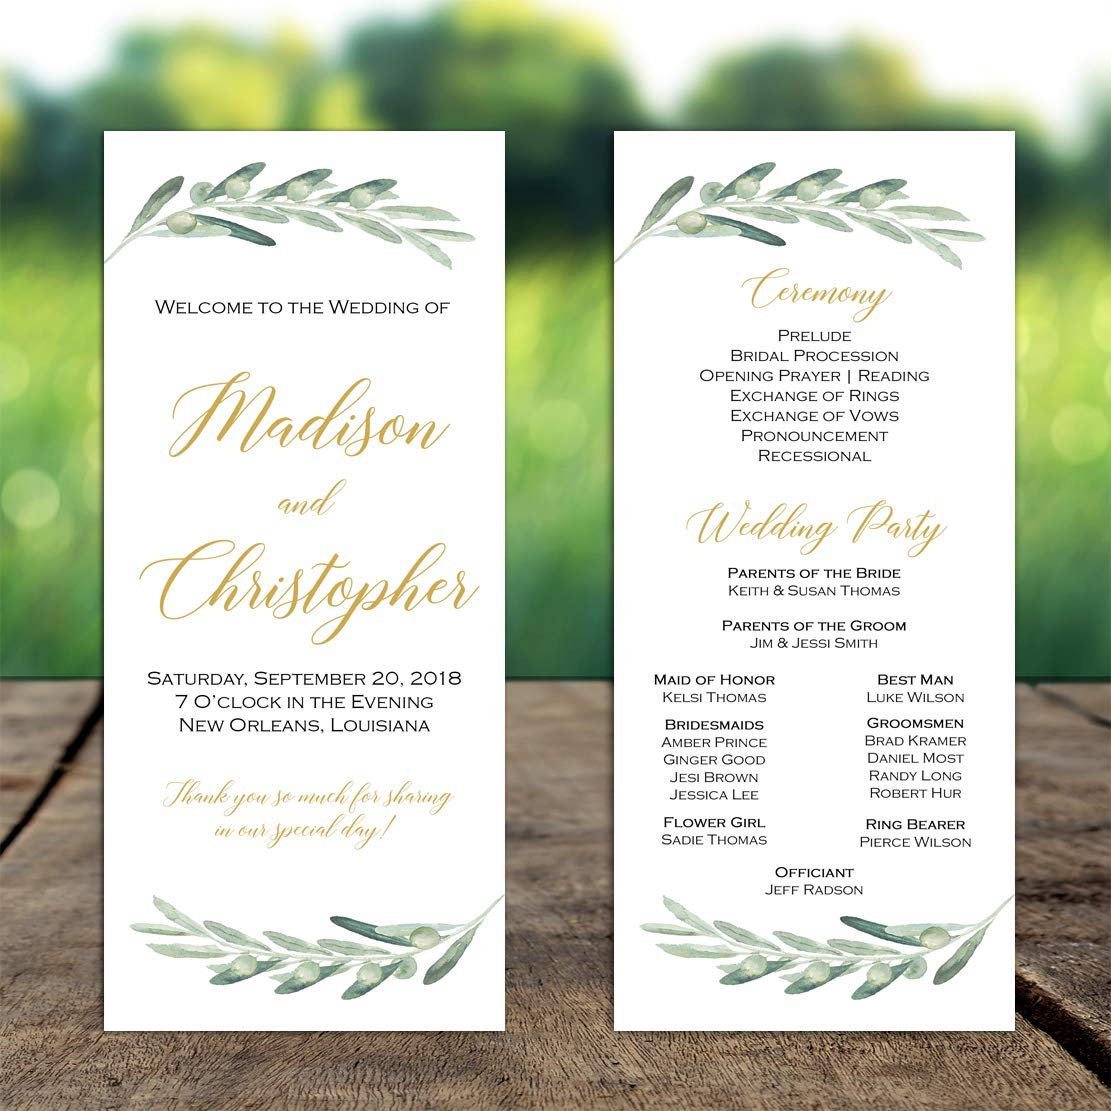 Amazon.com: Wedding Program Olive Branches with ANY Wording